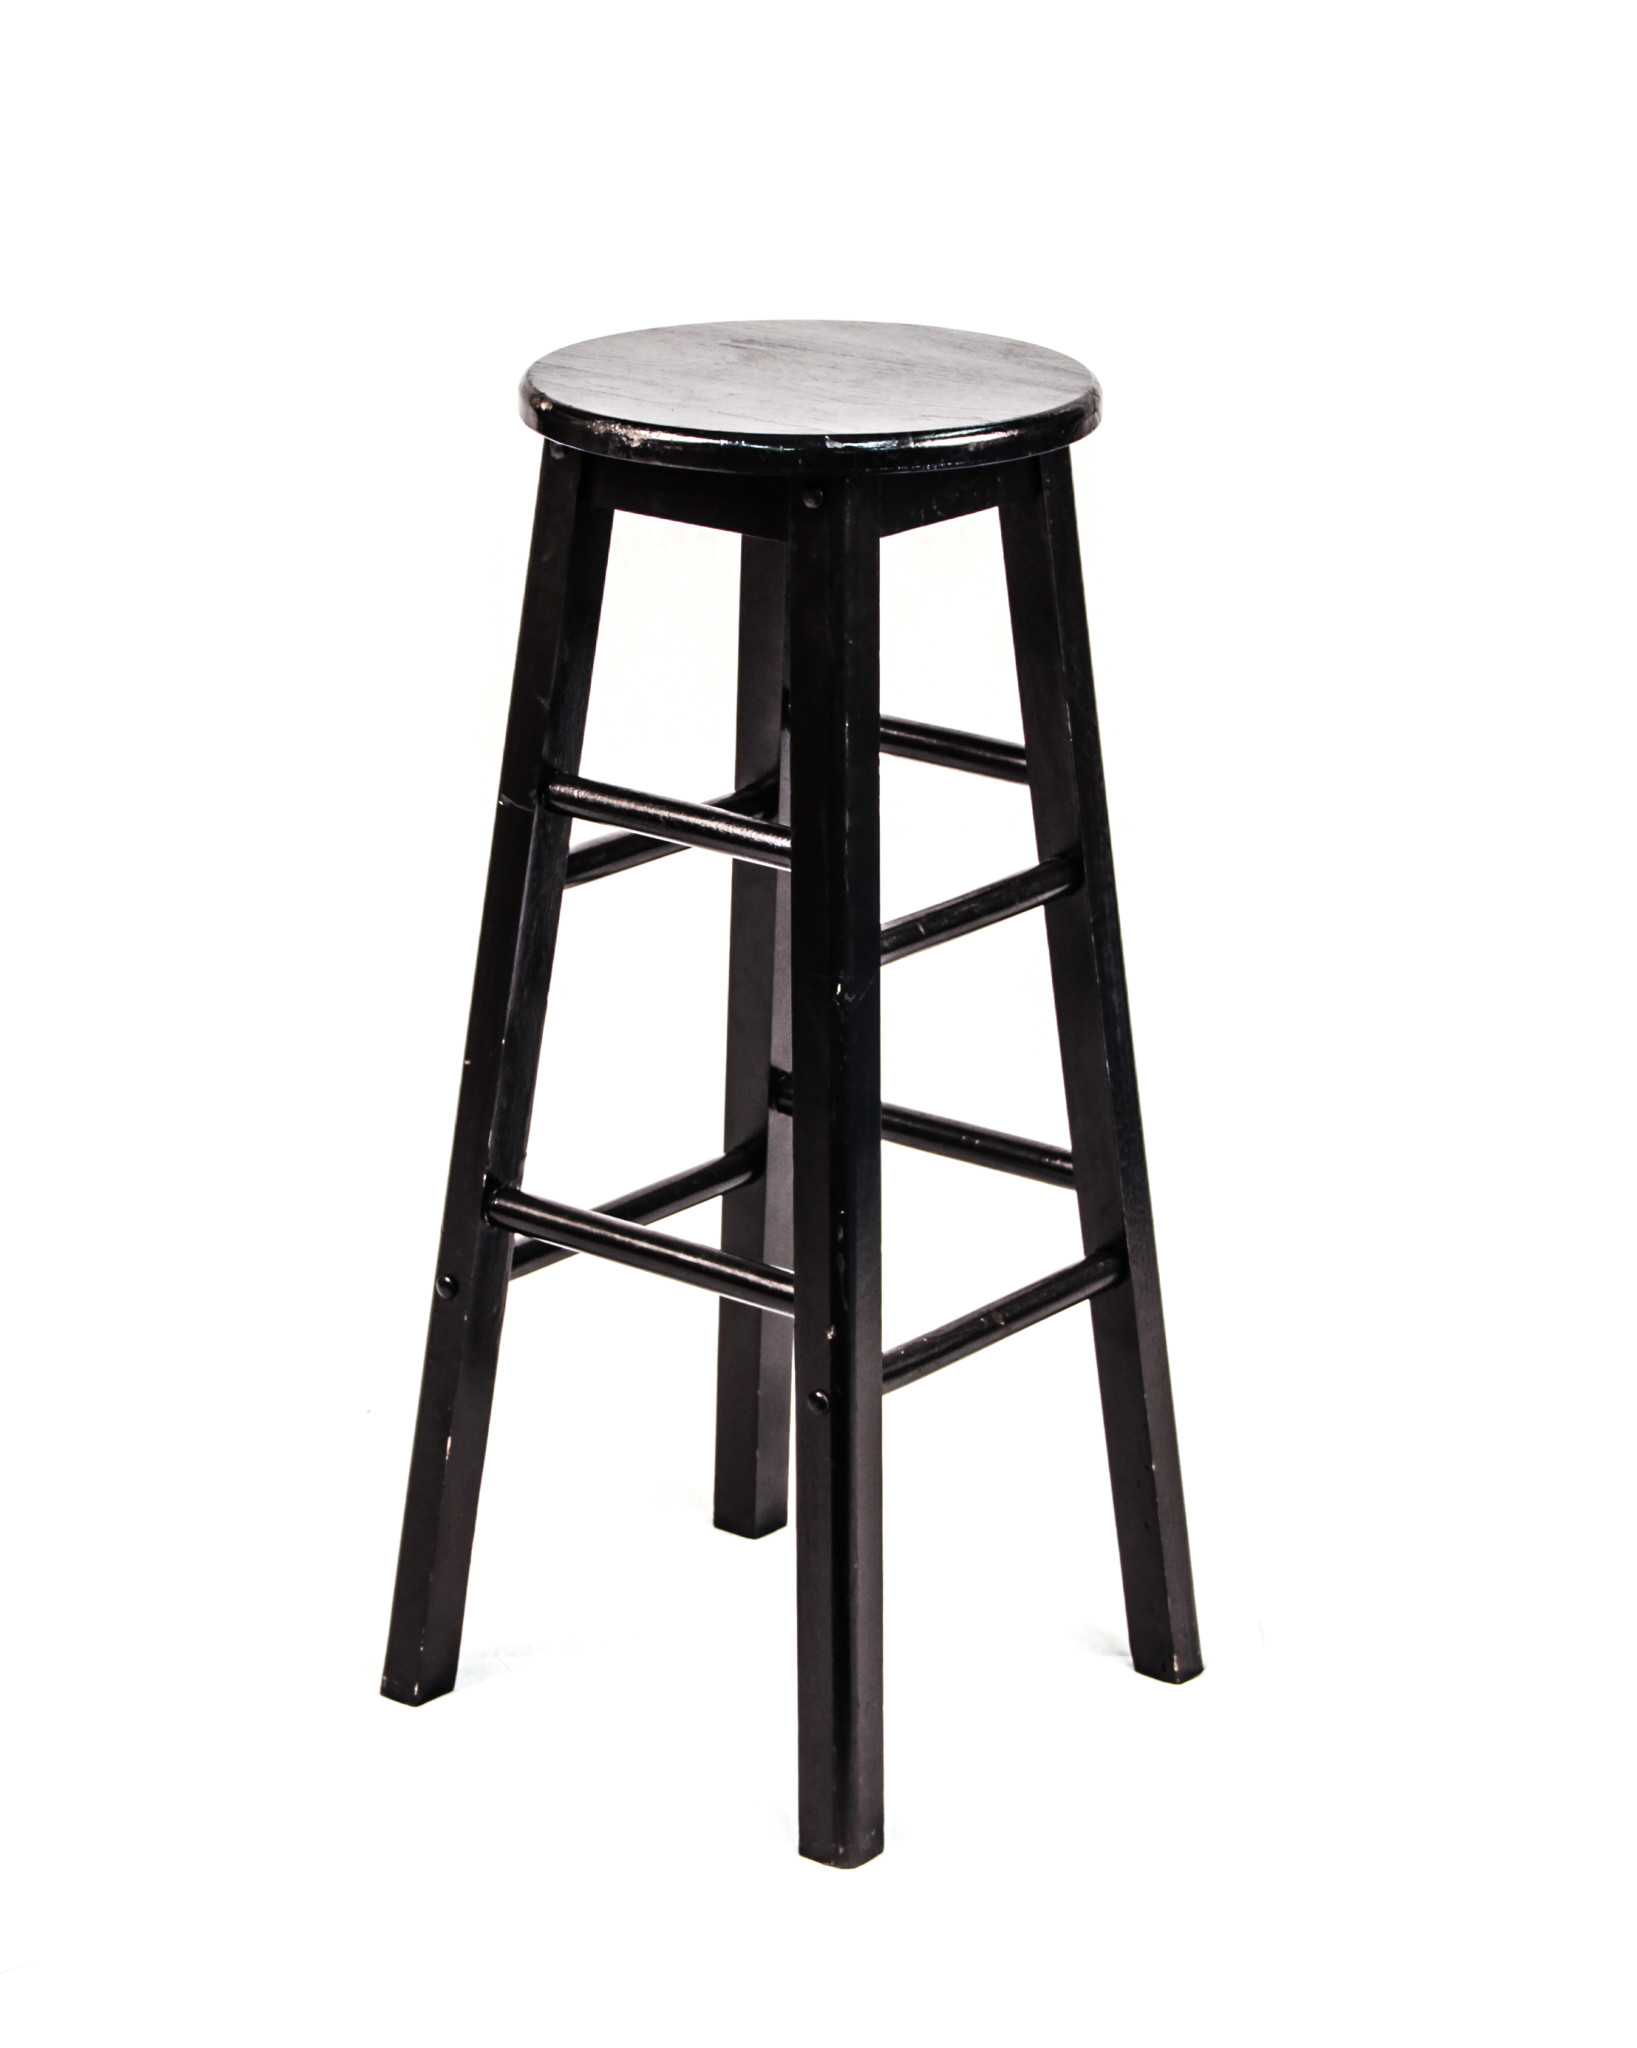 Groovy Wood Spindle Bar Stool Without Back Black Peter Corvallis Evergreenethics Interior Chair Design Evergreenethicsorg